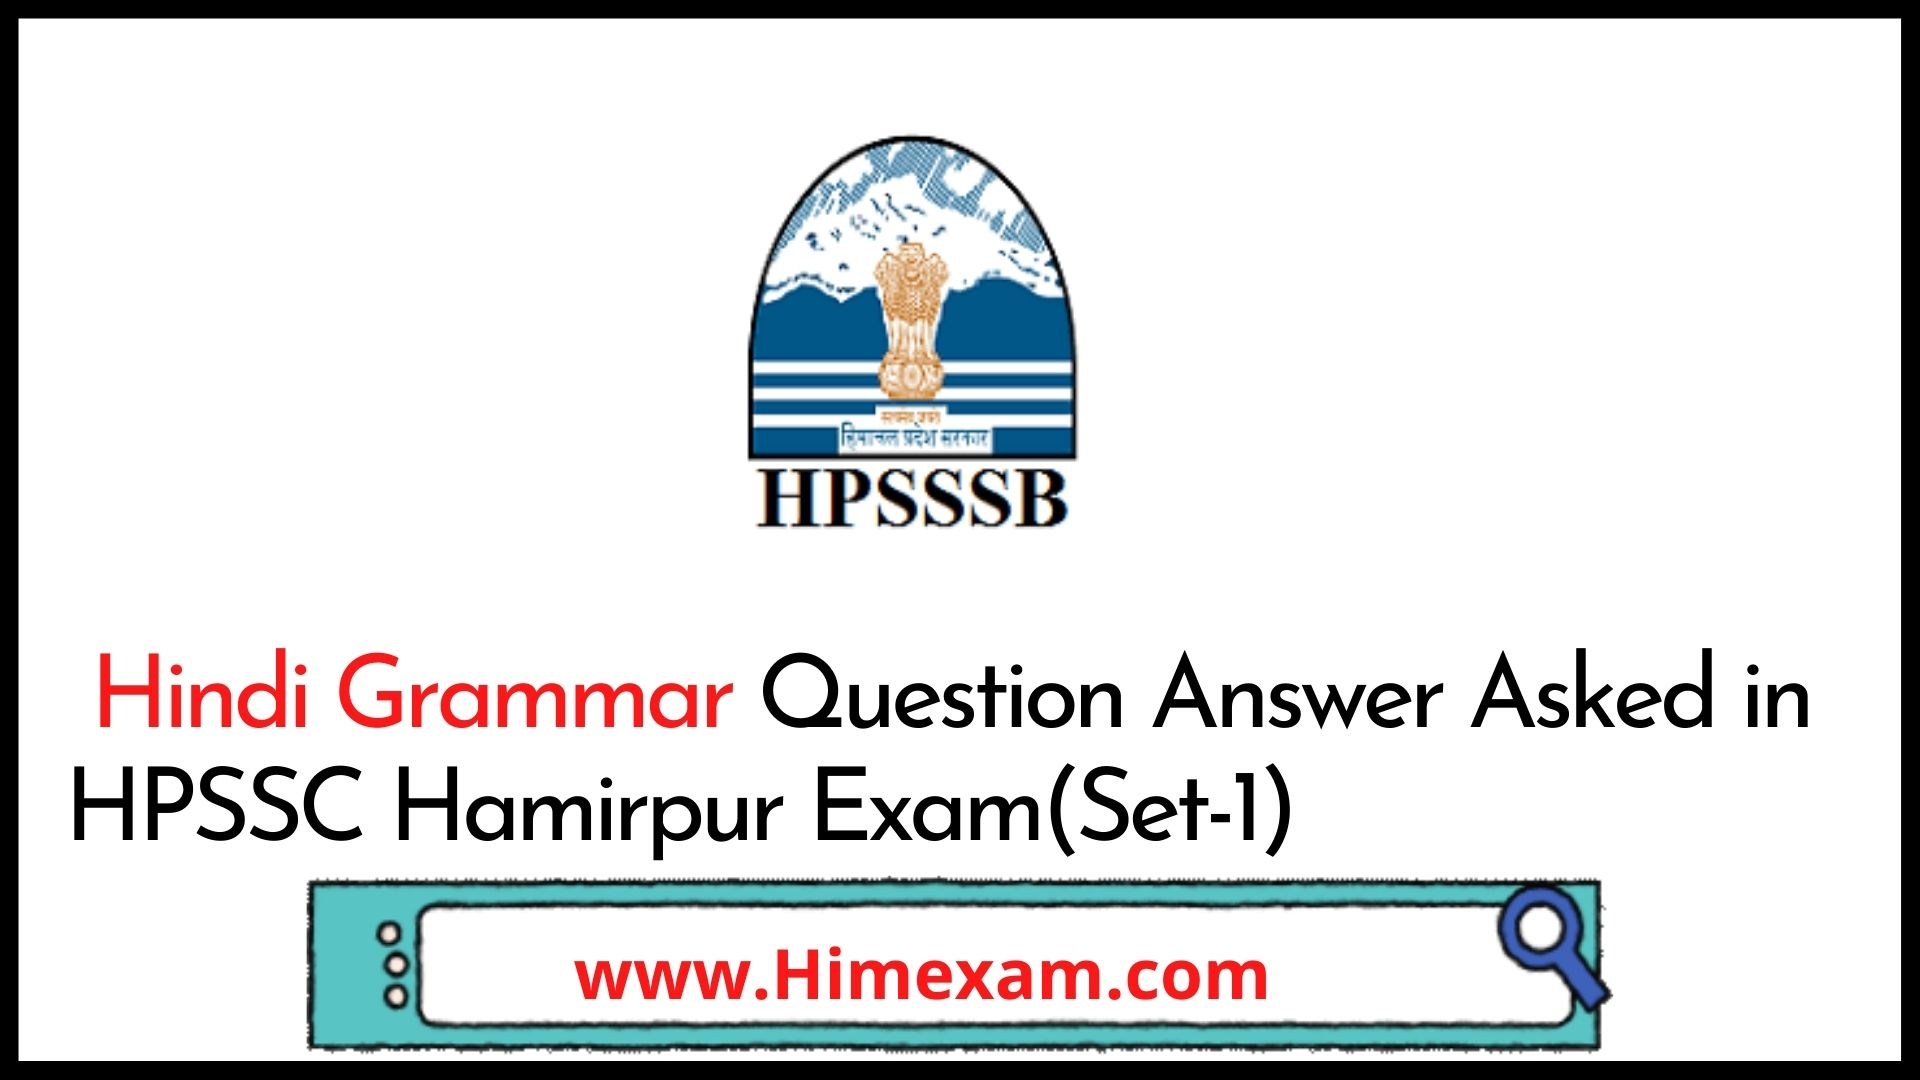 Hindi Grammar Question Answer Asked in HPSSC  Exam(Set-1)